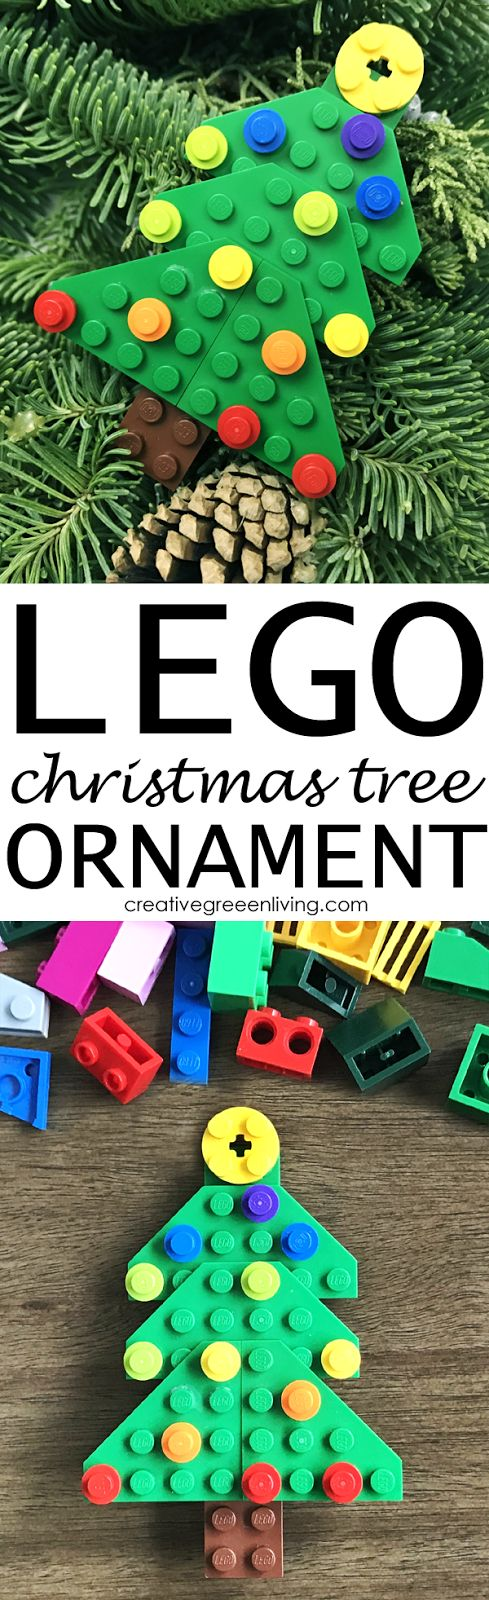 How to make a DIY xmas ornament! Post has instructions for how to make a fun Christmas tree ornament with a few lego bricks. Super easy and fun for kids.